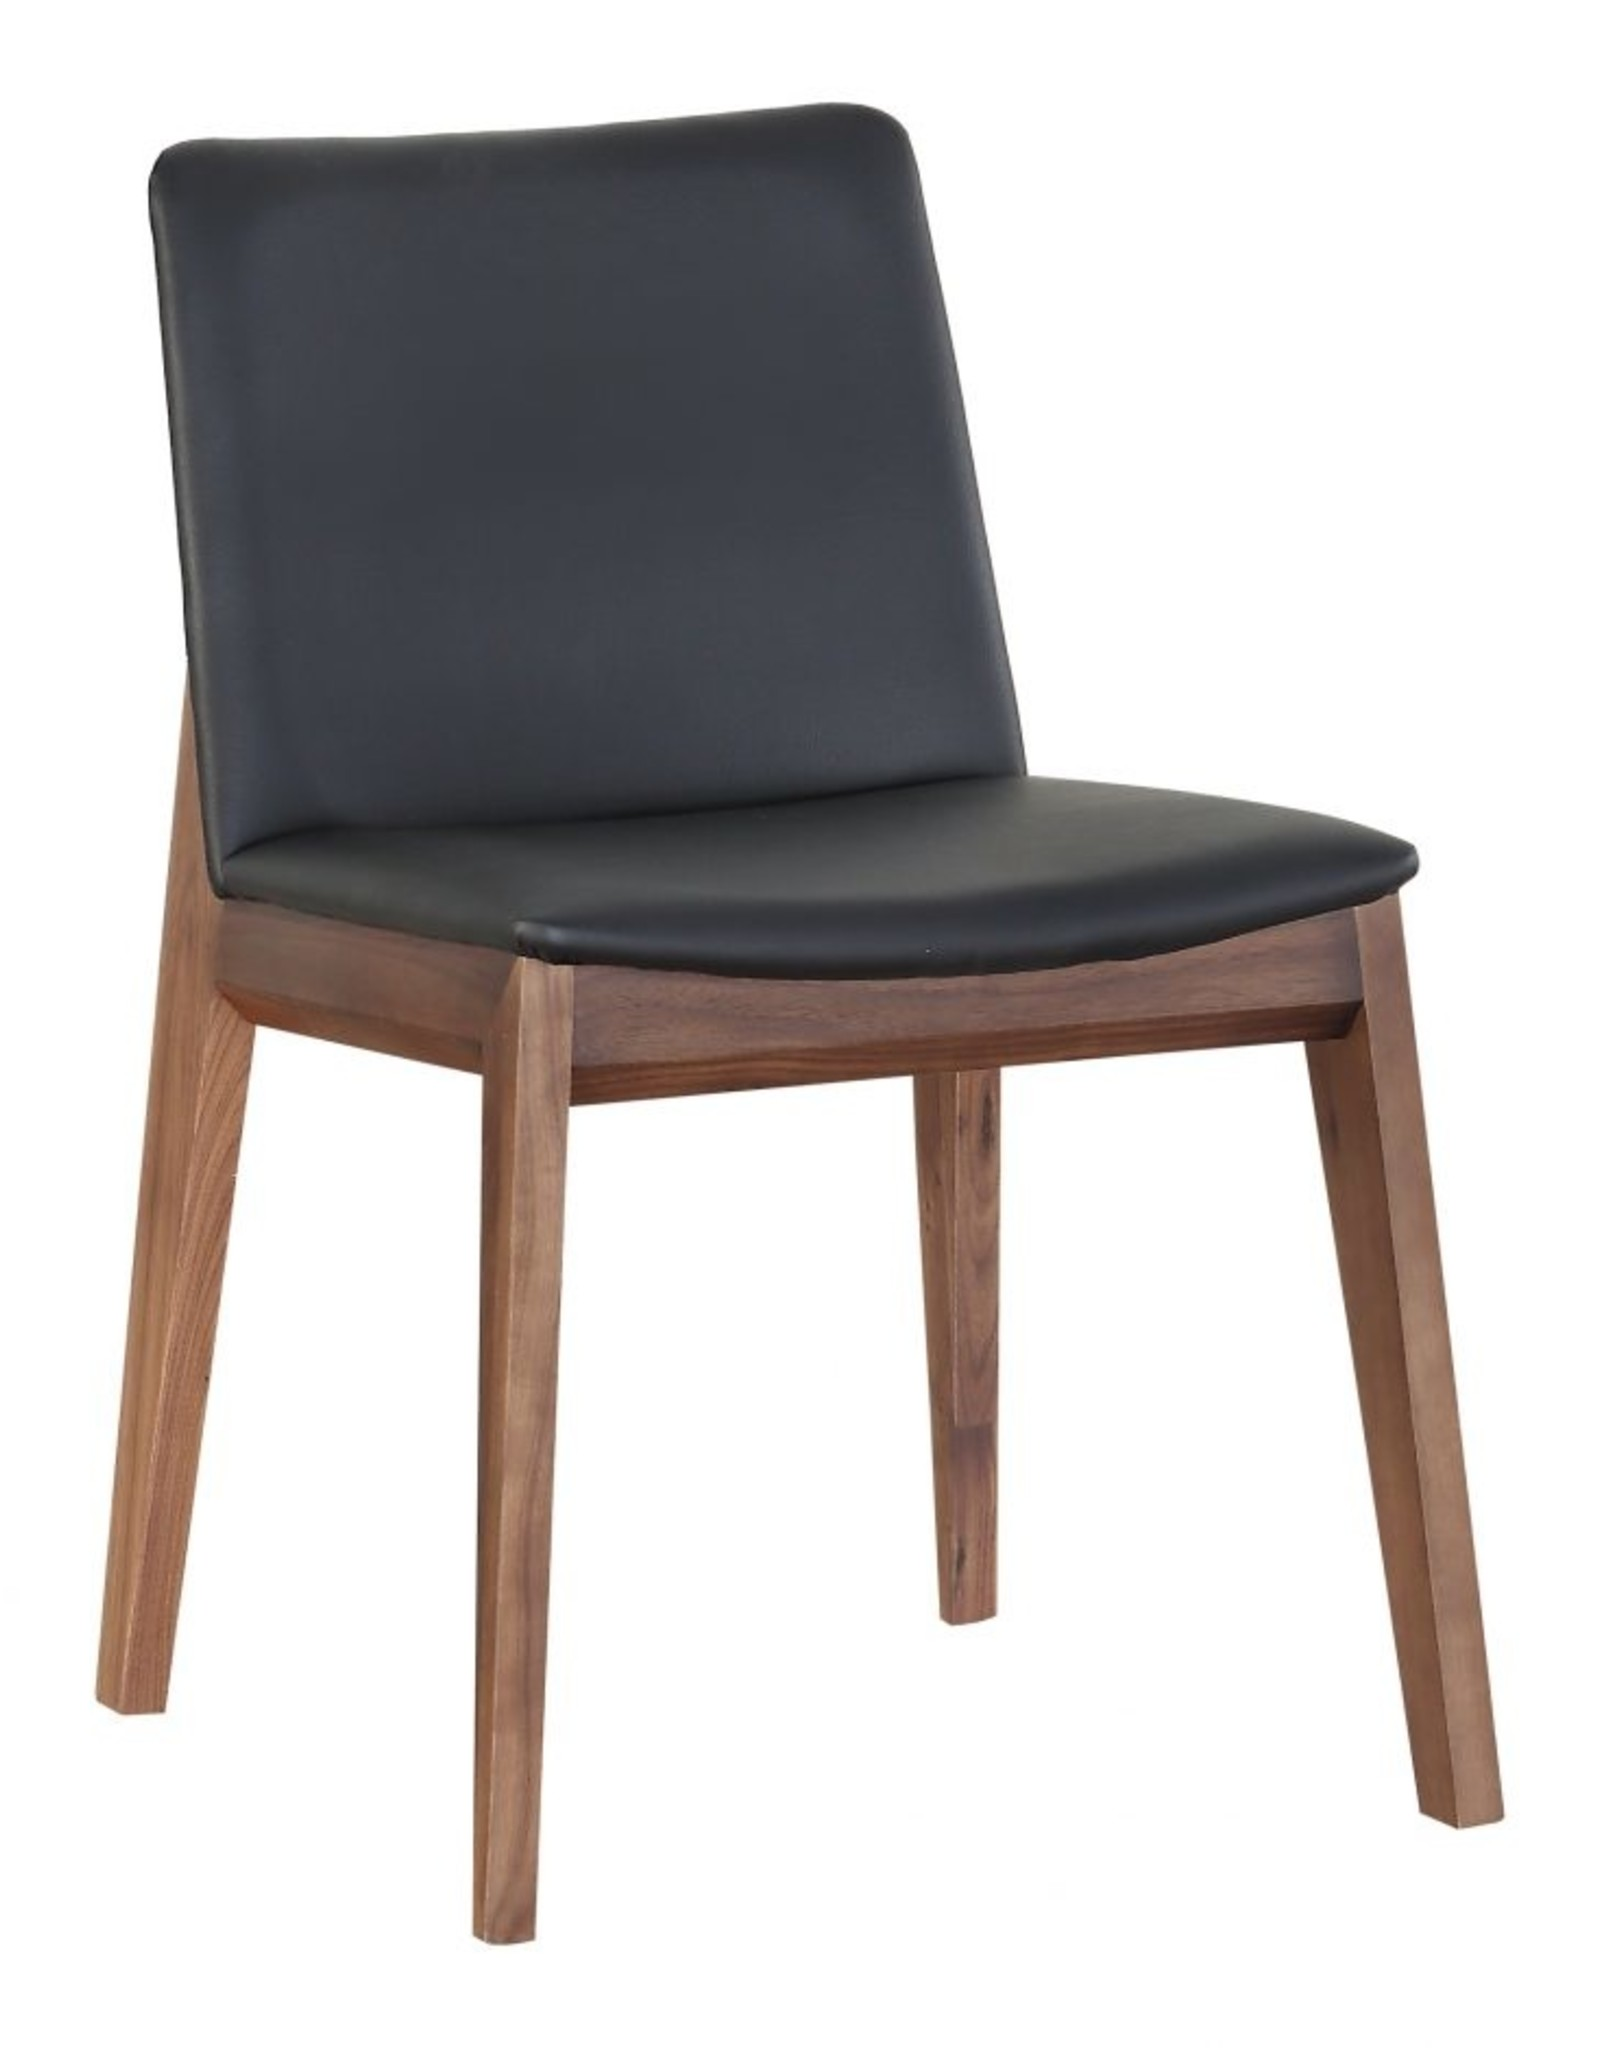 Moes Home Collection Moes Deco Chair Black PVC BC-1016-48